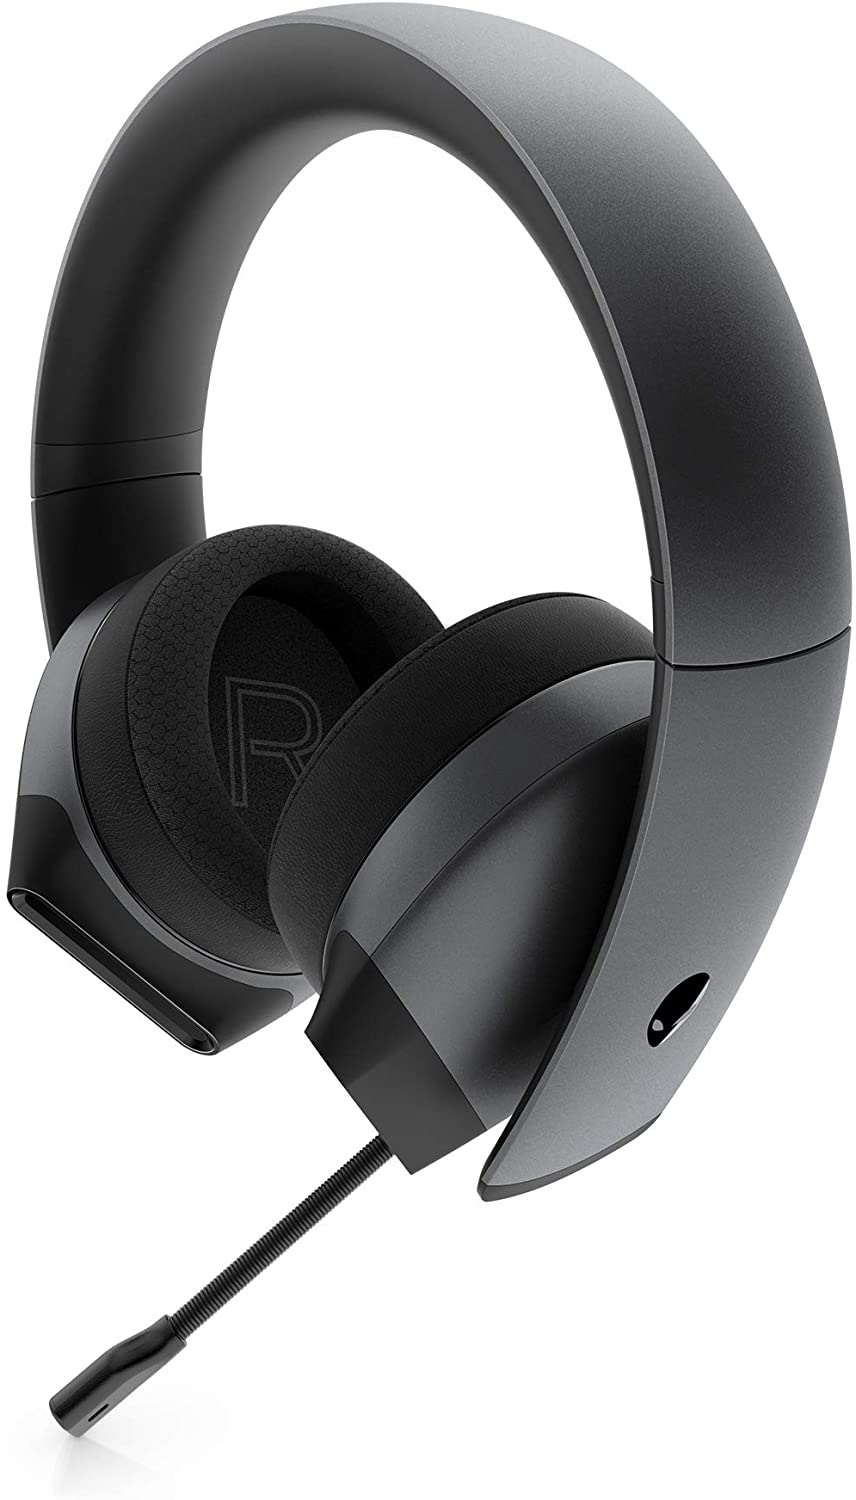 Alienware 7.1 PC Gaming Headset AW510H-Dark: 50mm Hi-Res Drivers - Noise Cancelling Mic - Multi Platform Compatible(PS4,Xbox One,Switch) via 3.5mm Jack